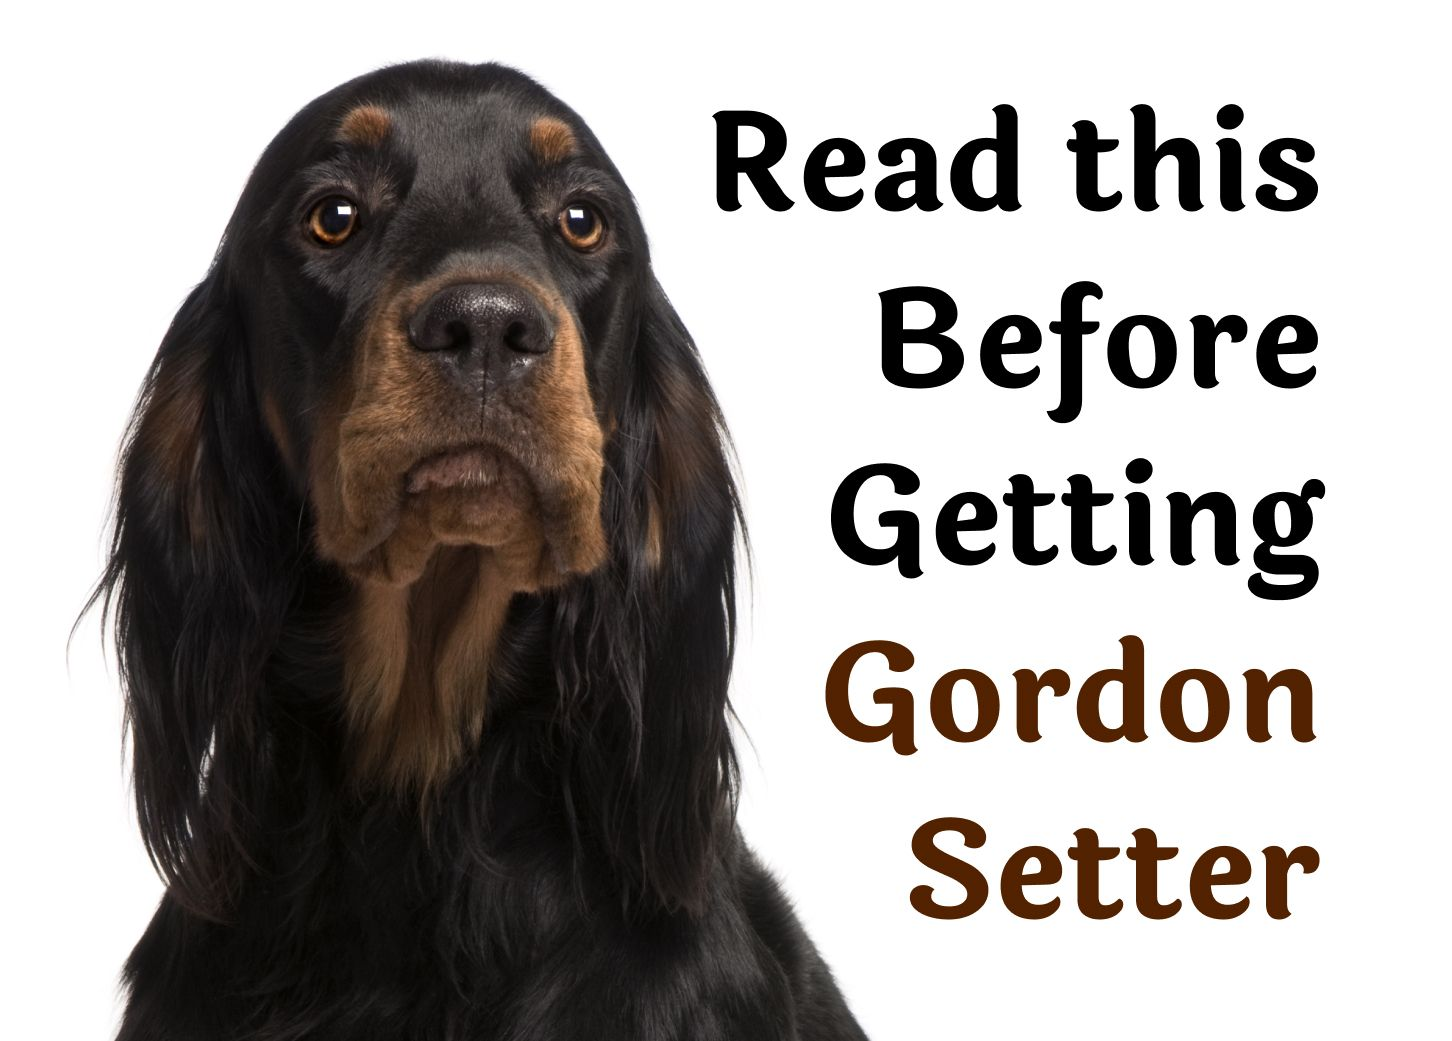 25 Questions That Should Be Considered Before Getting A Gordon Setter